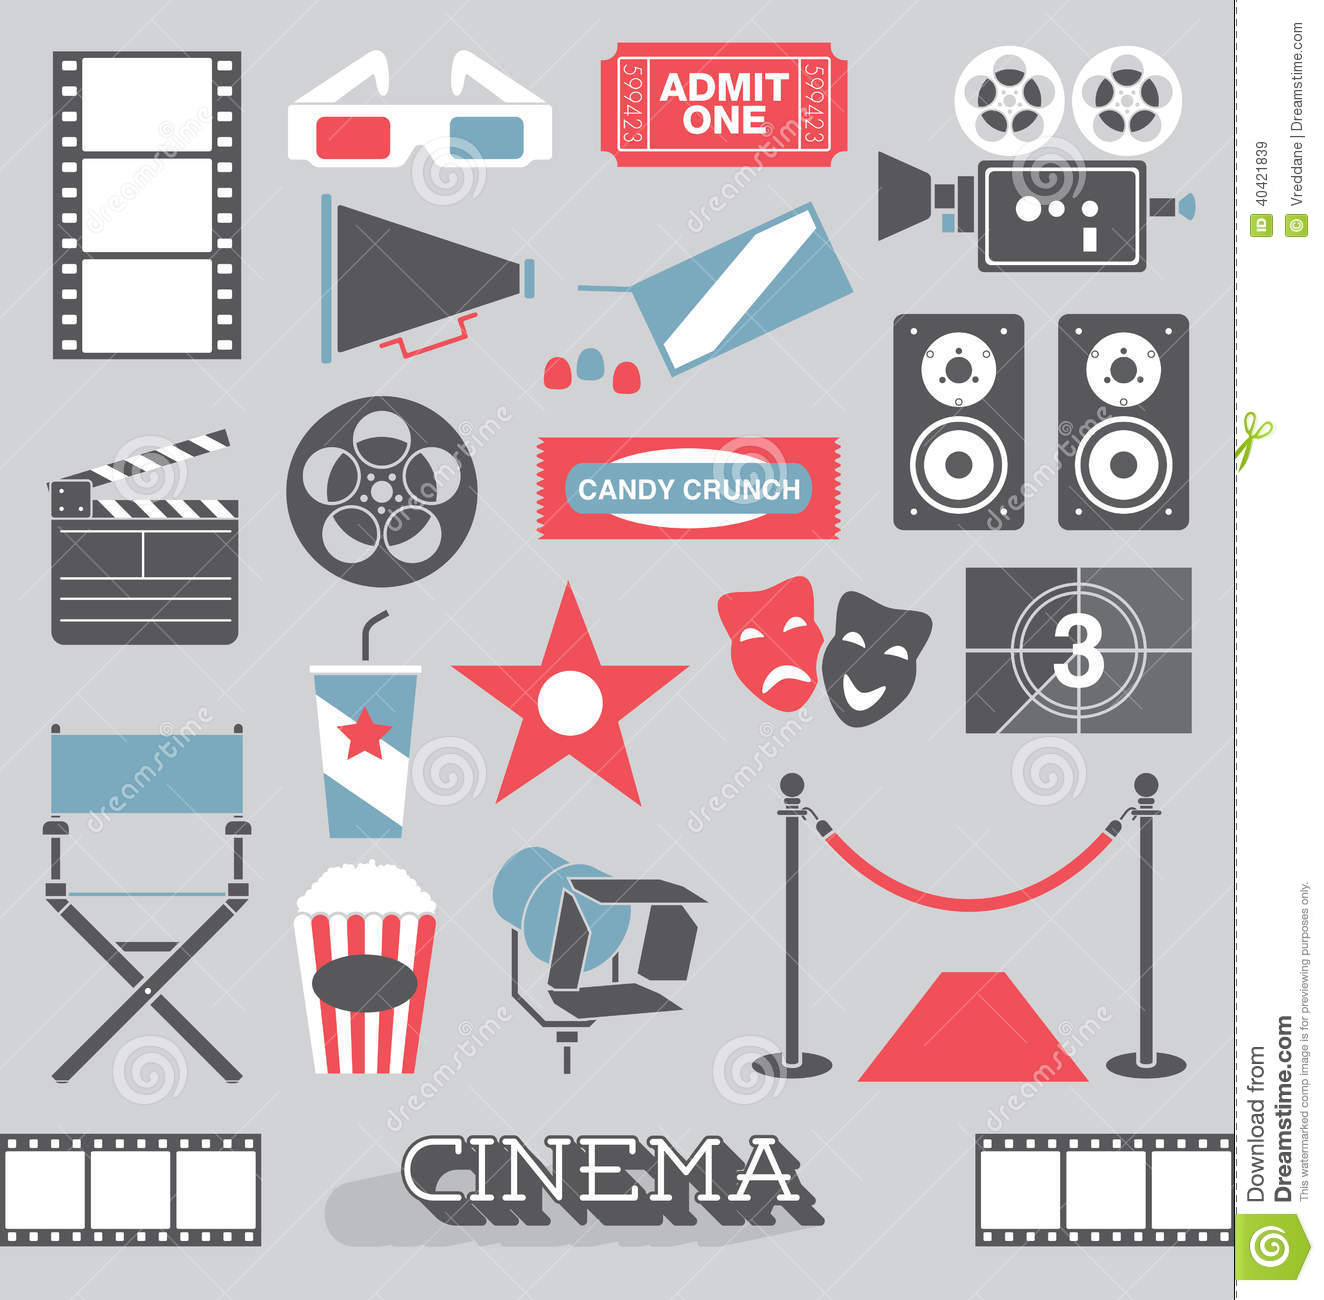 Symbol for theatre images symbol and sign ideas czeshop images theatre arts symbol theater symbol source buycottarizona biocorpaavc